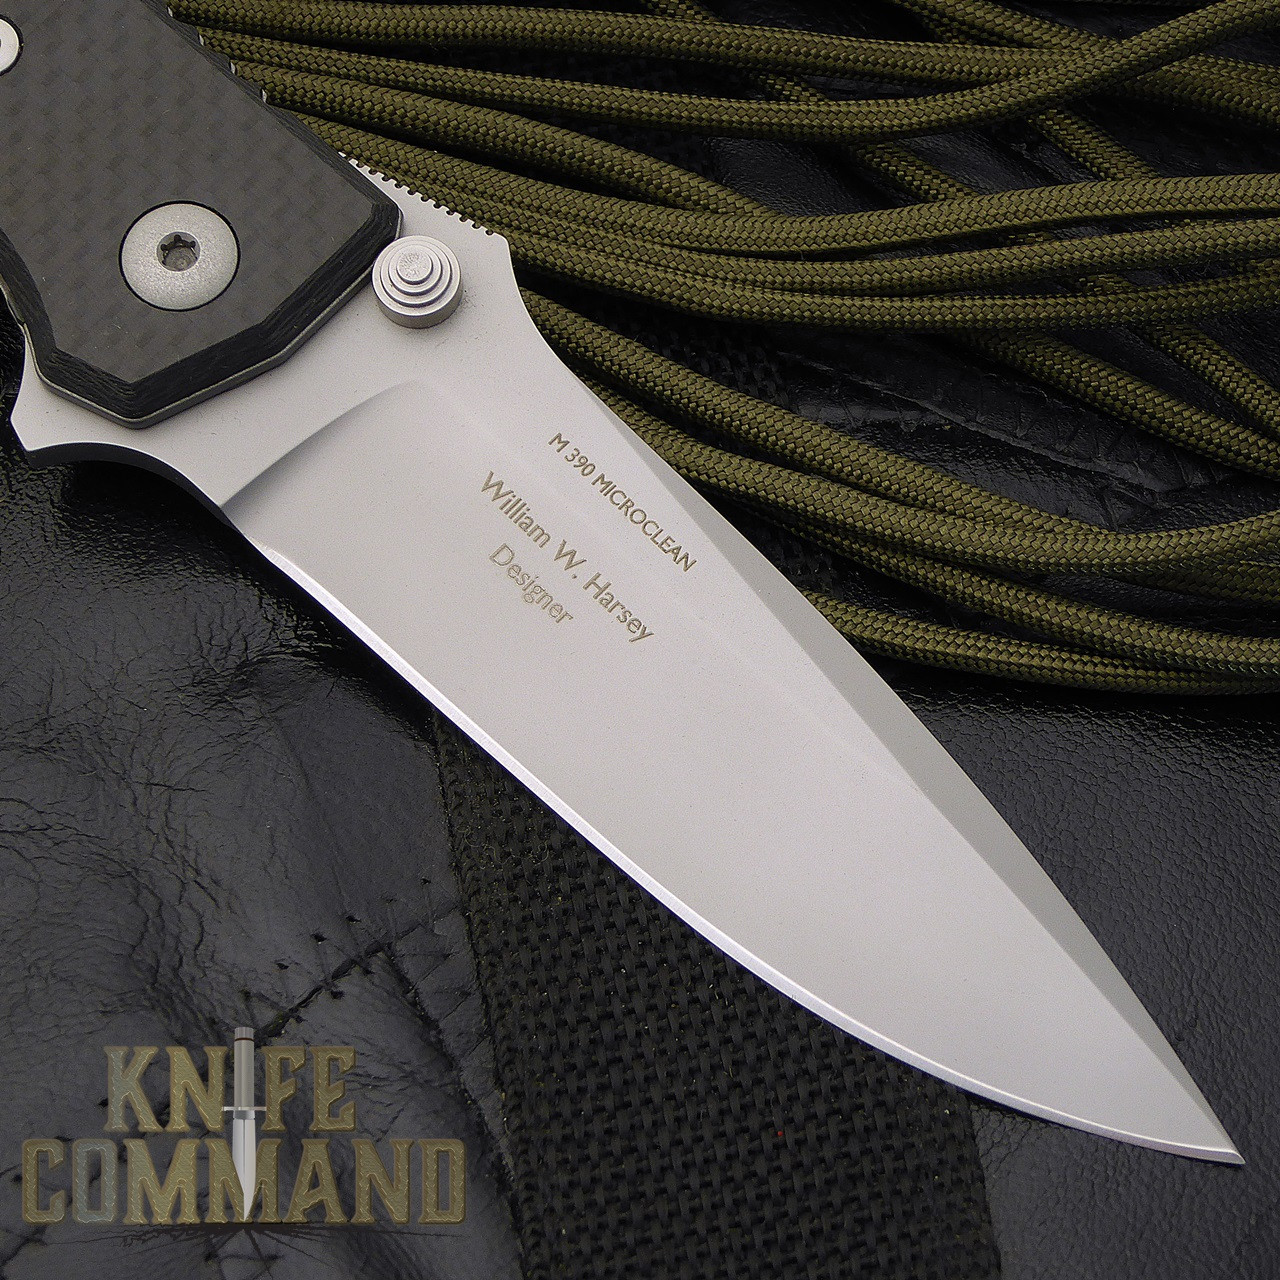 Fantoni HB 01 William Harsey Carbon Fiber Combat Folder Tactical Knife.  M 390 Microclean steel.